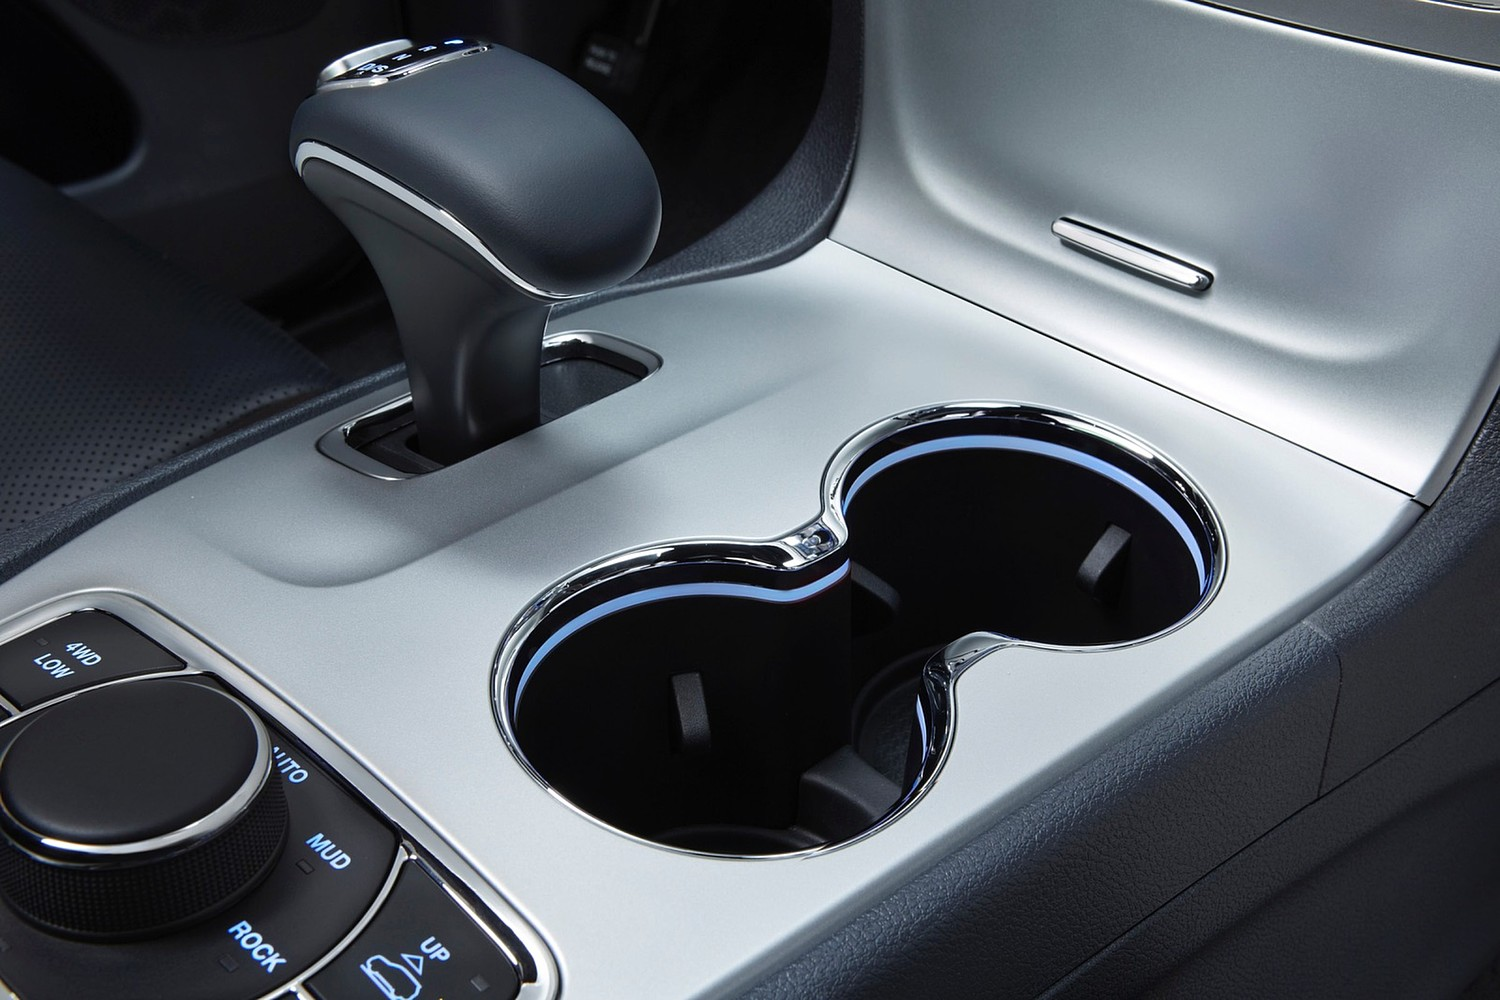 Jeep Grand Cherokee Limited 4dr SUV Cupholders (2015 model year shown)